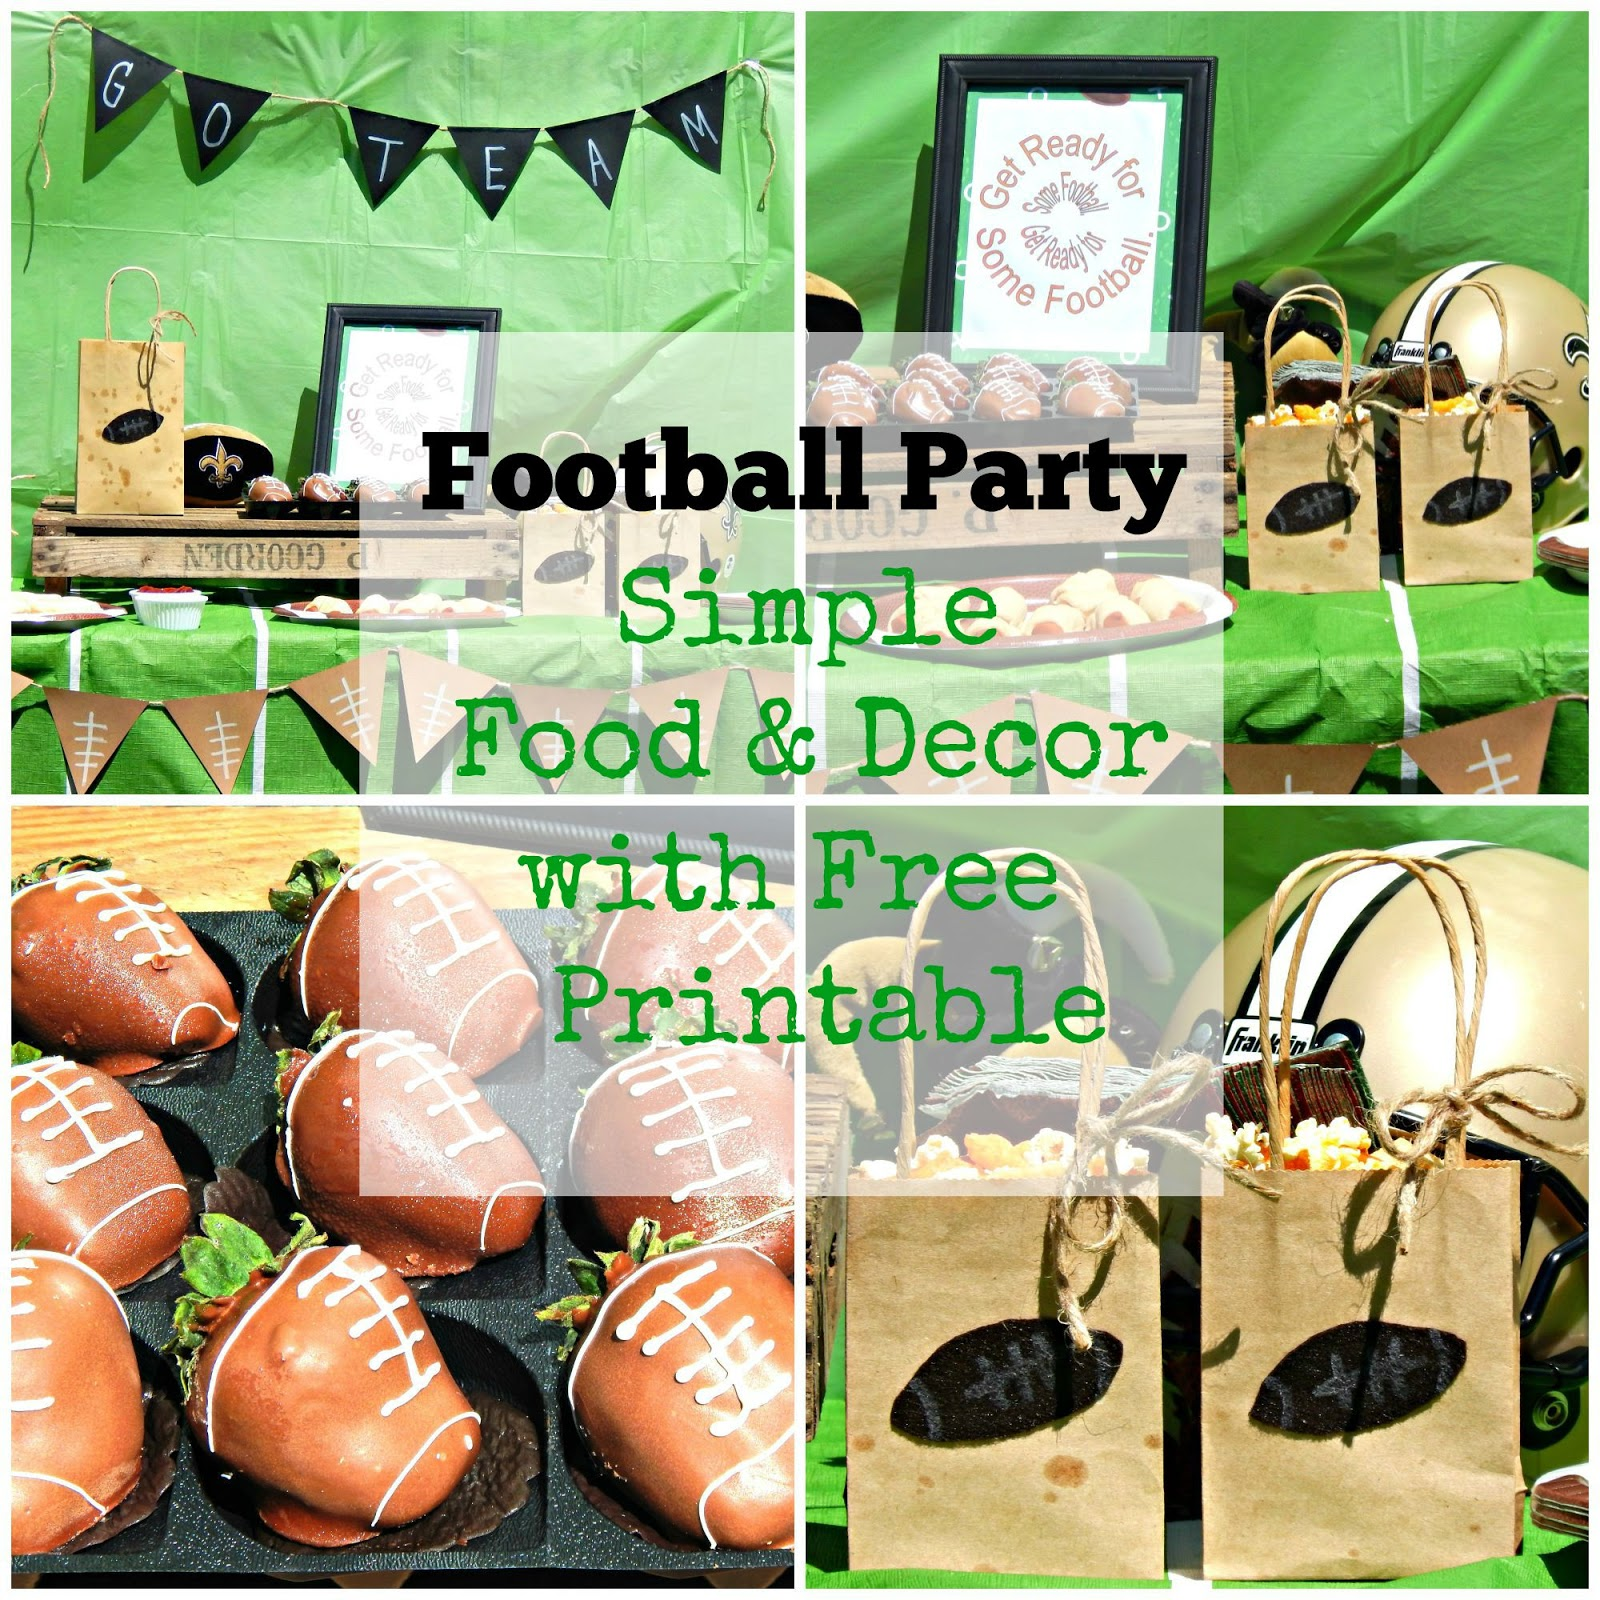 Football Party - Simple Food & Decor with Free Printable - This Ole Mom